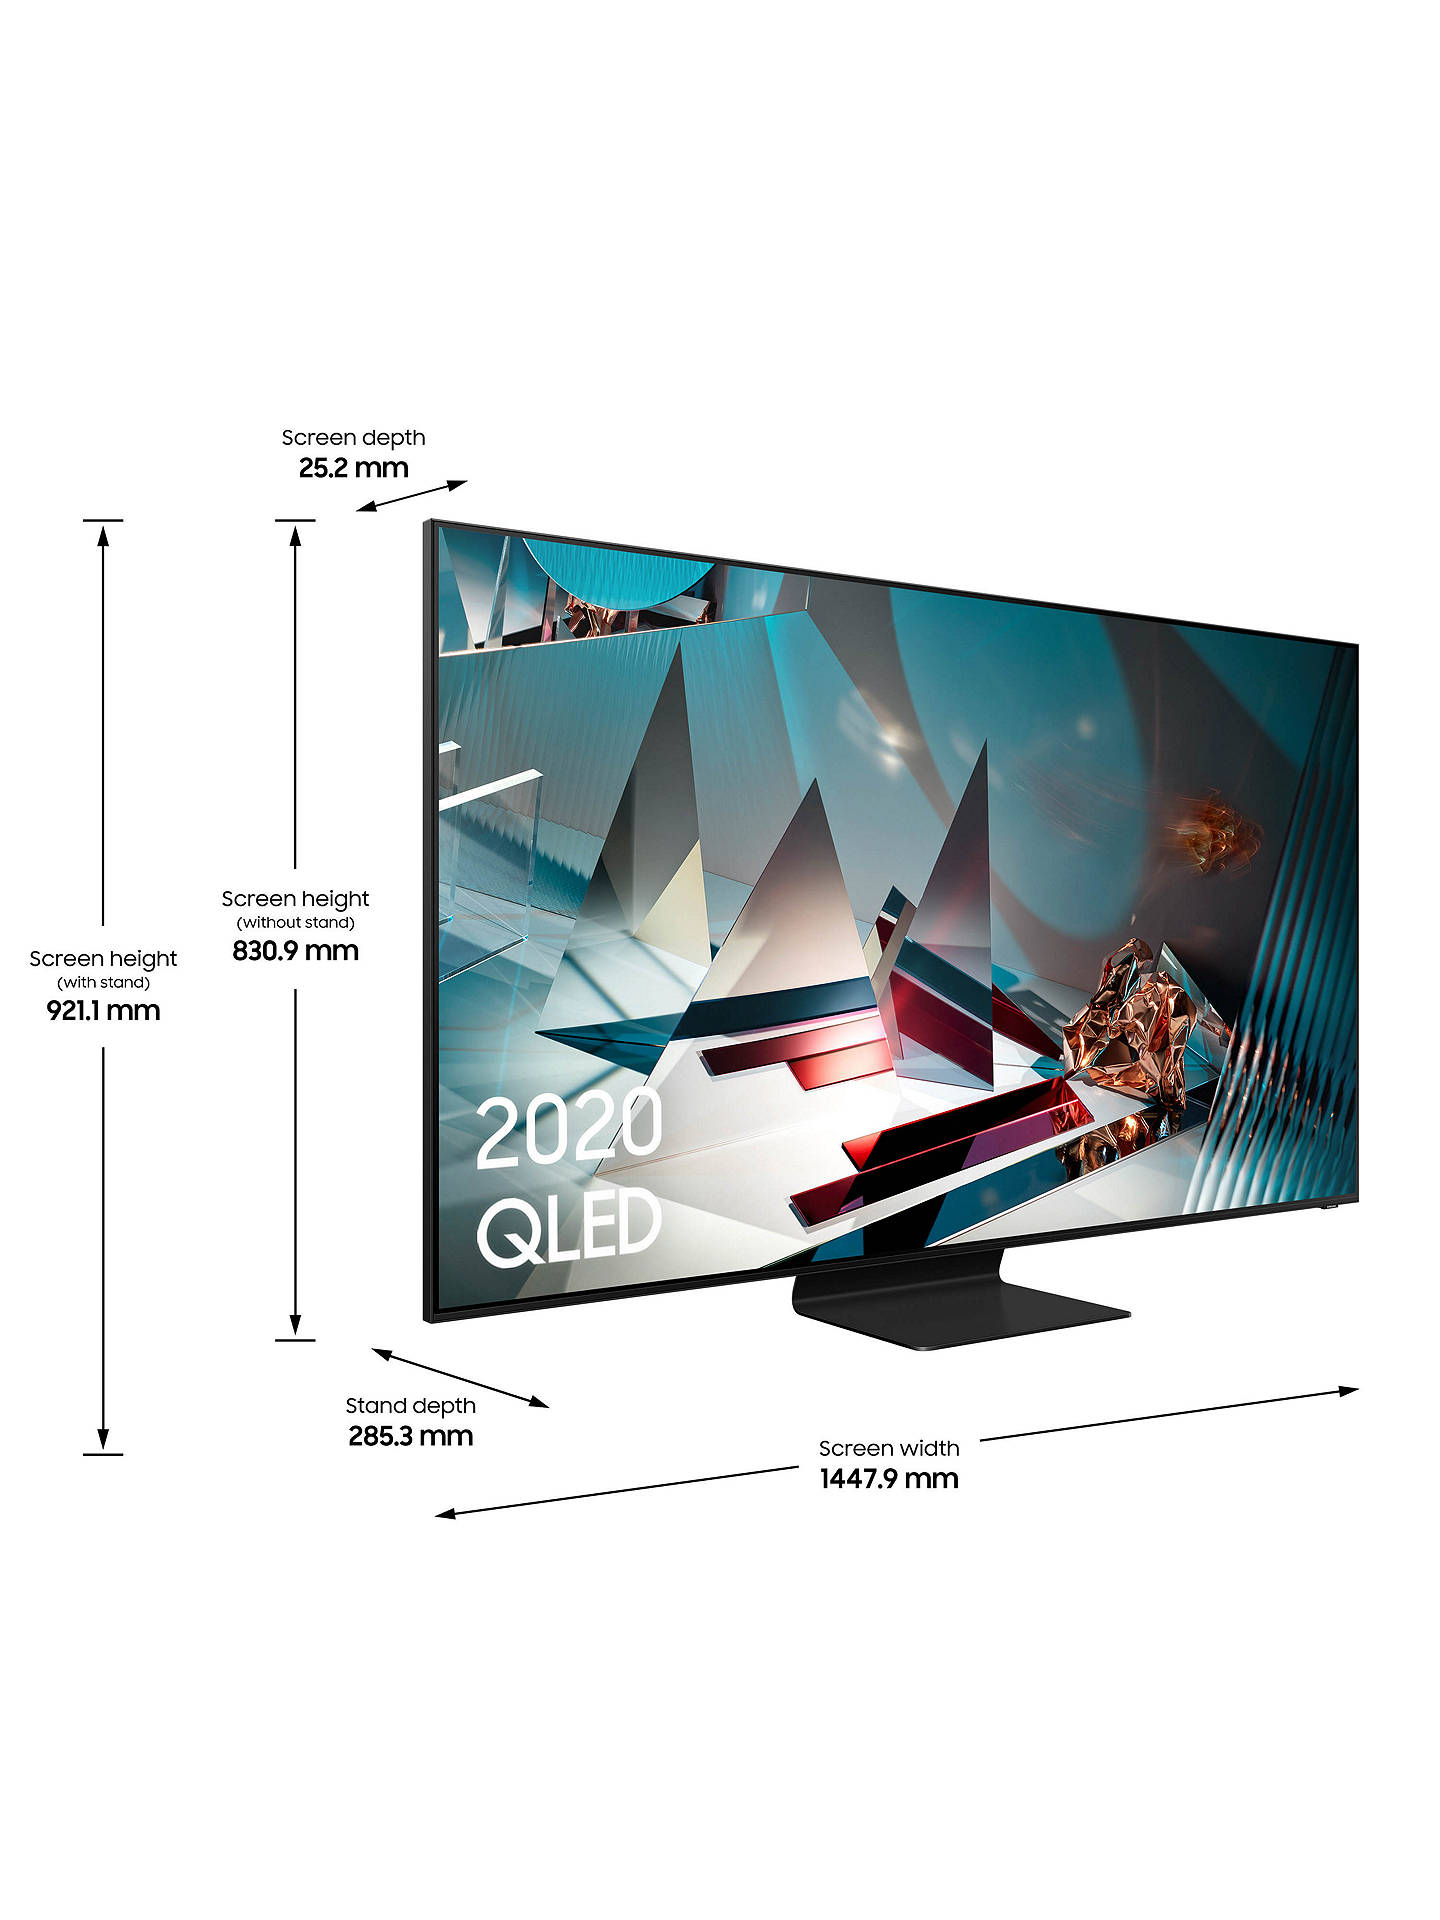 Samsung QE65Q800T (2020) QLED HDR 2000 8K Ultra HD Smart TV, 65